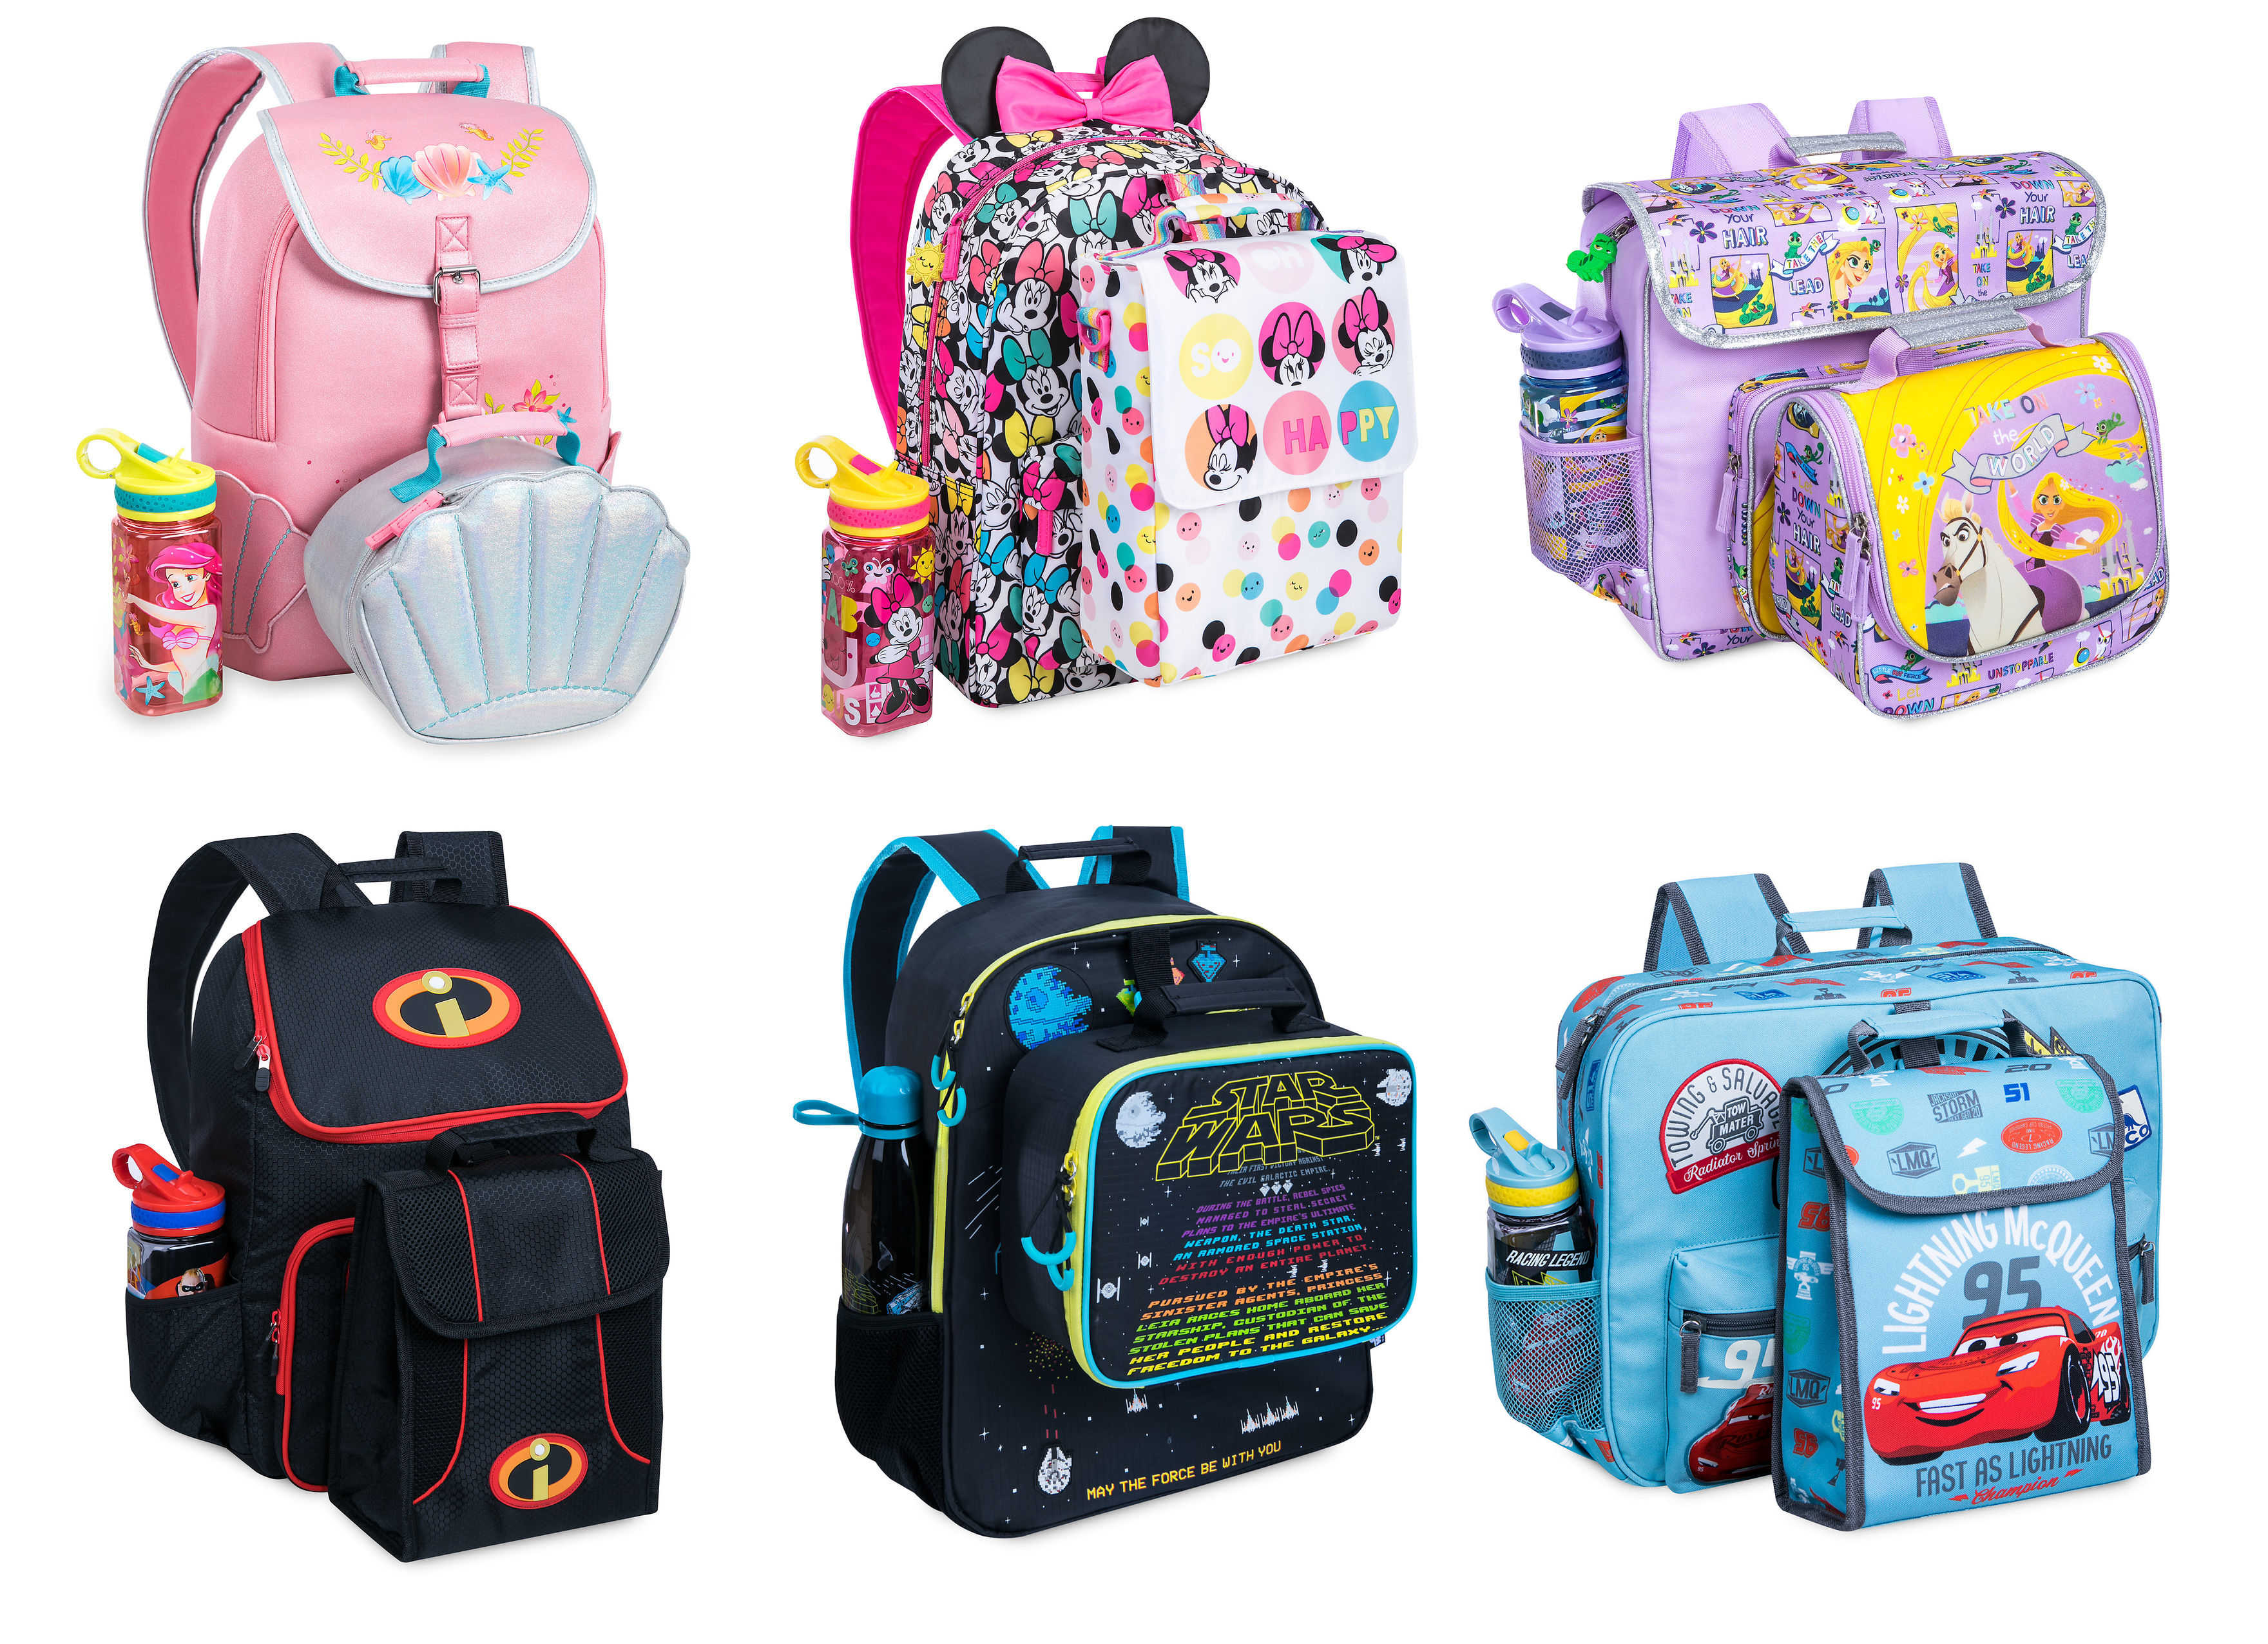 427e1e8574f Disney Character Backpack AND Lunch Tote PLUS Personalization All for  25!